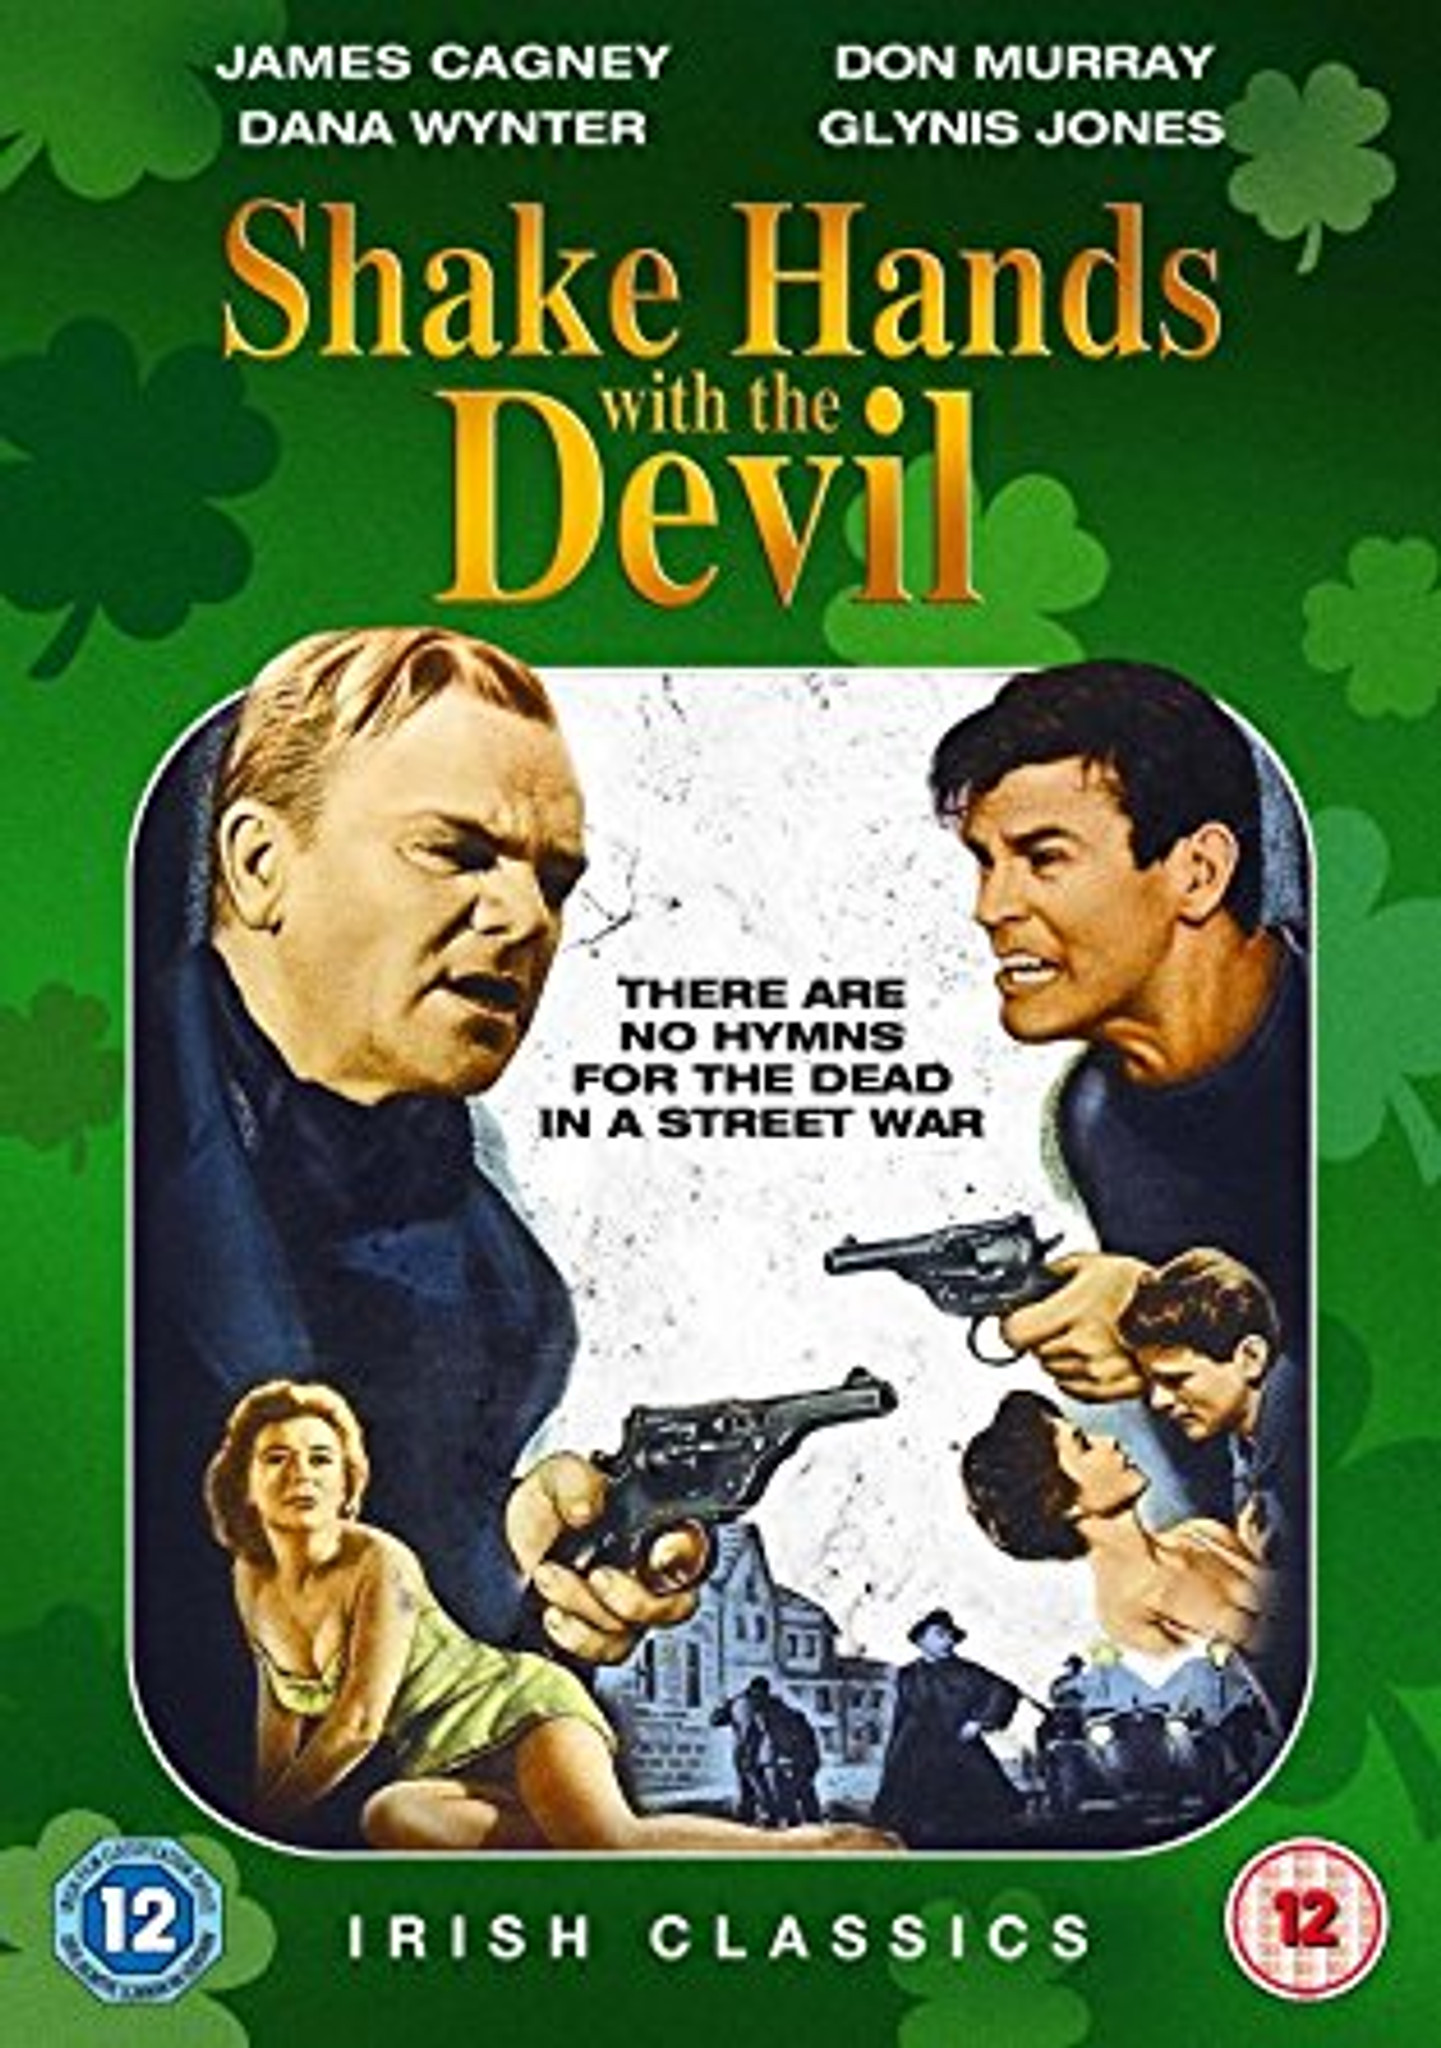 Shake Hands with the Devil Dvd